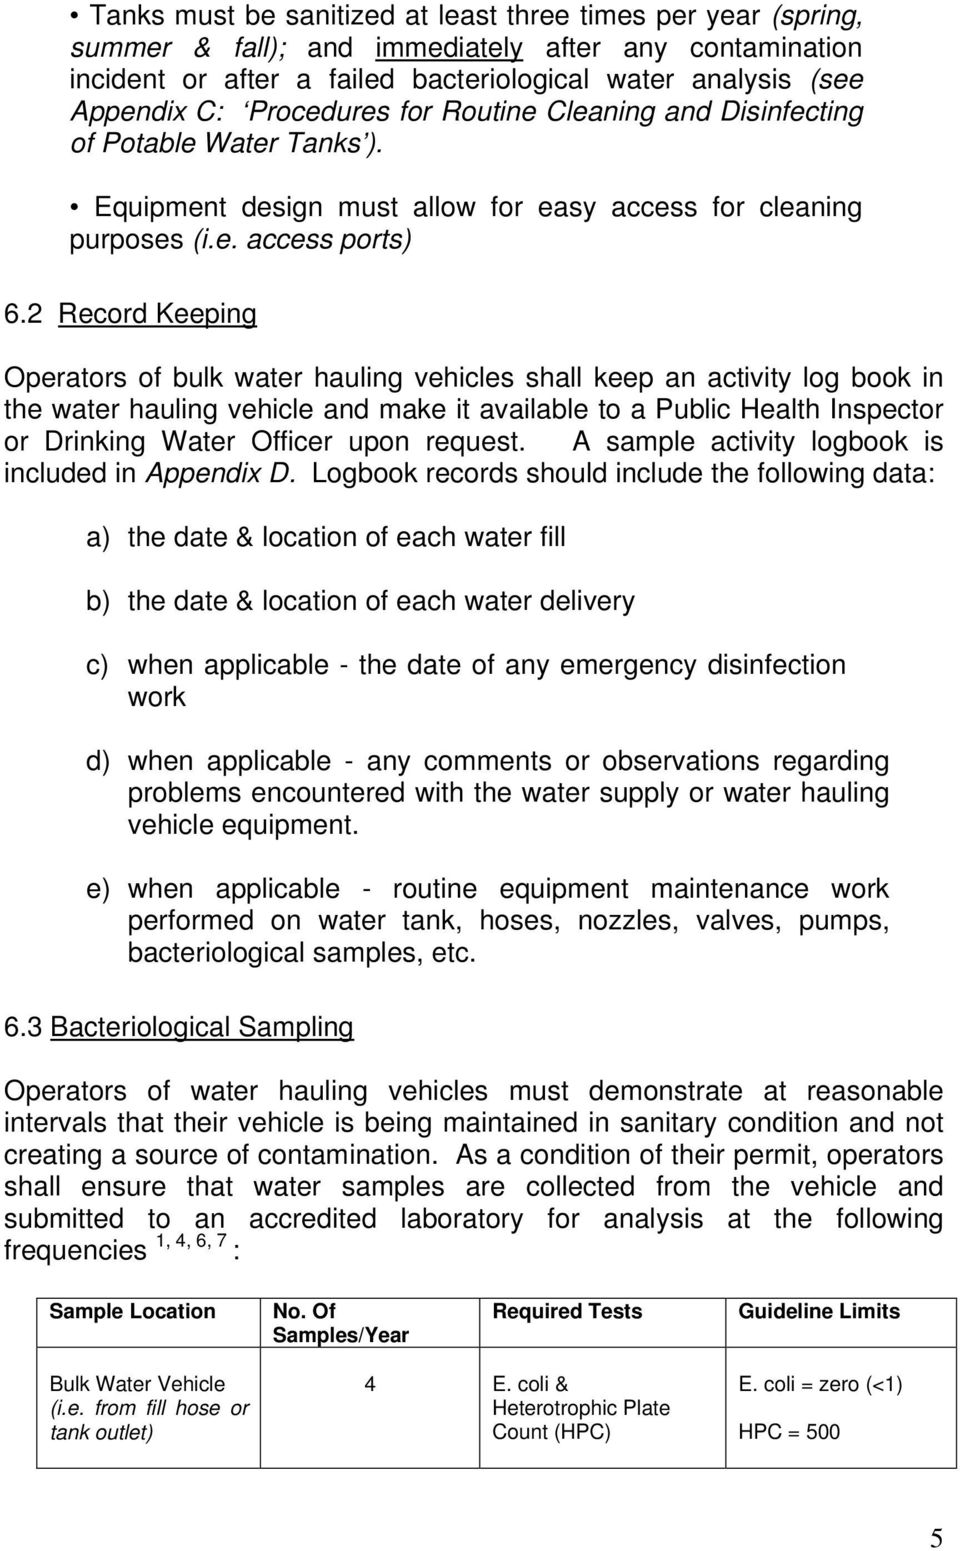 2 Record Keeping Operators of bulk water hauling vehicles shall keep an activity log book in the water hauling vehicle and make it available to a Public Health Inspector or Drinking Water Officer